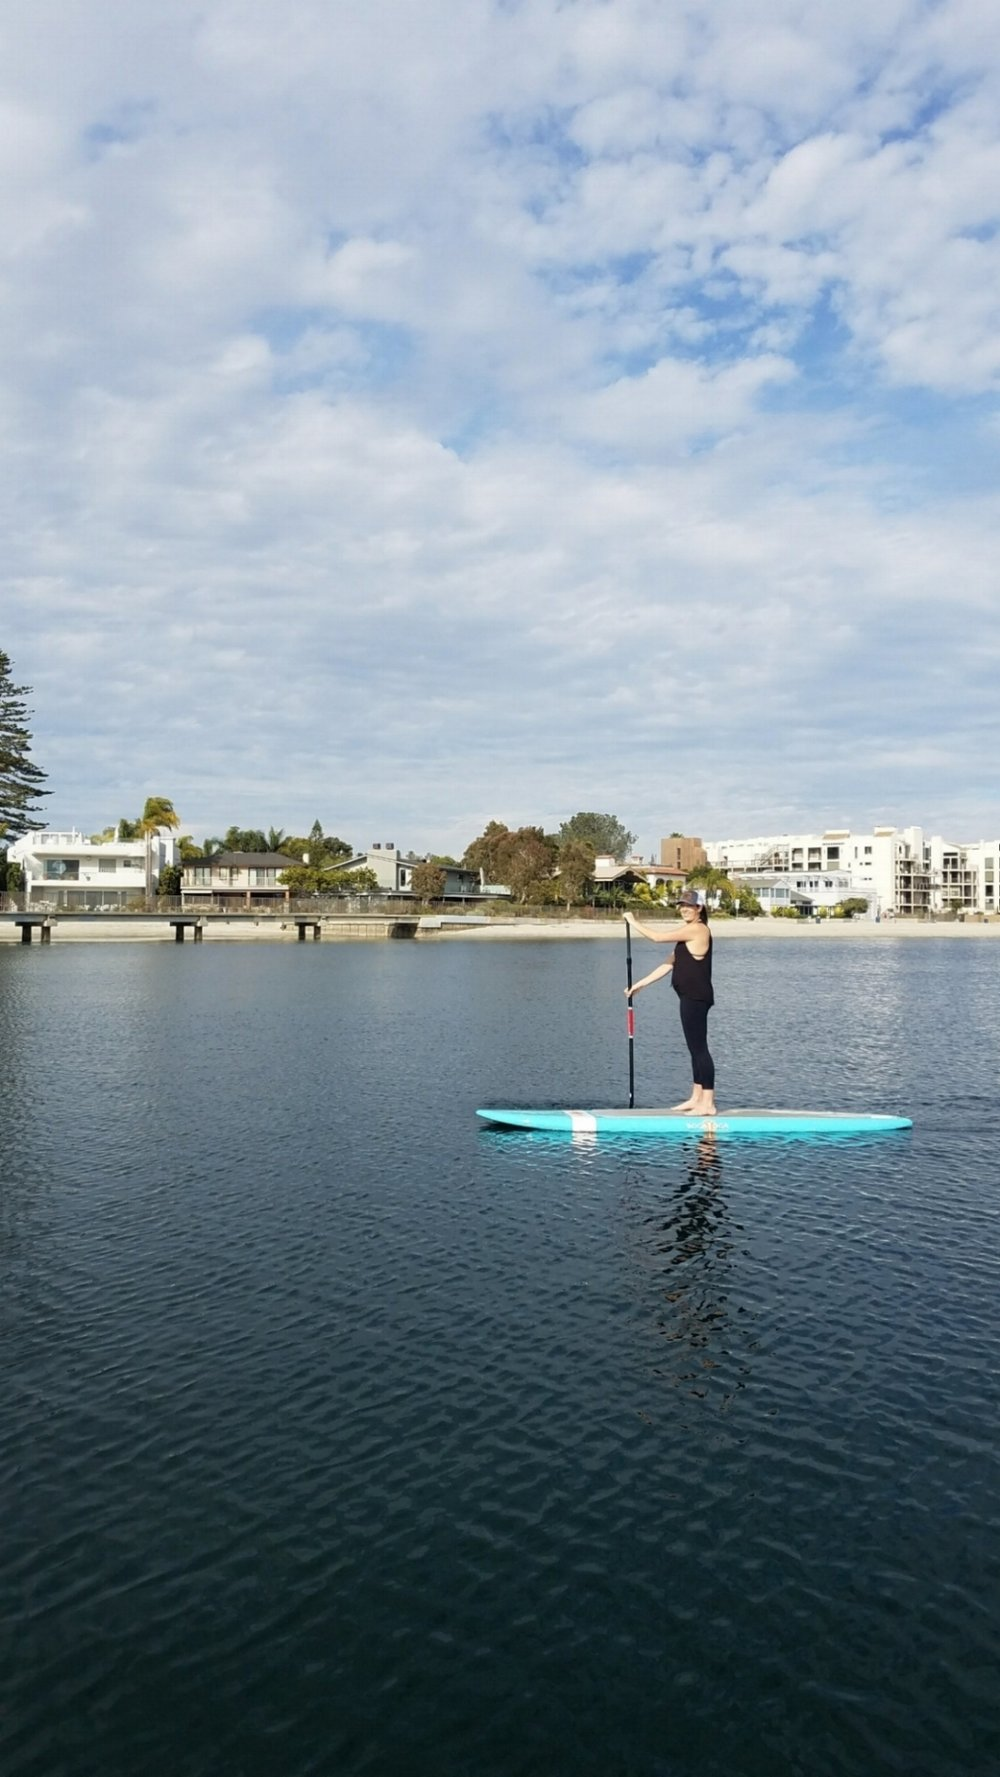 SunChaser SUP paddling out in Mission Bay - San Diego, California